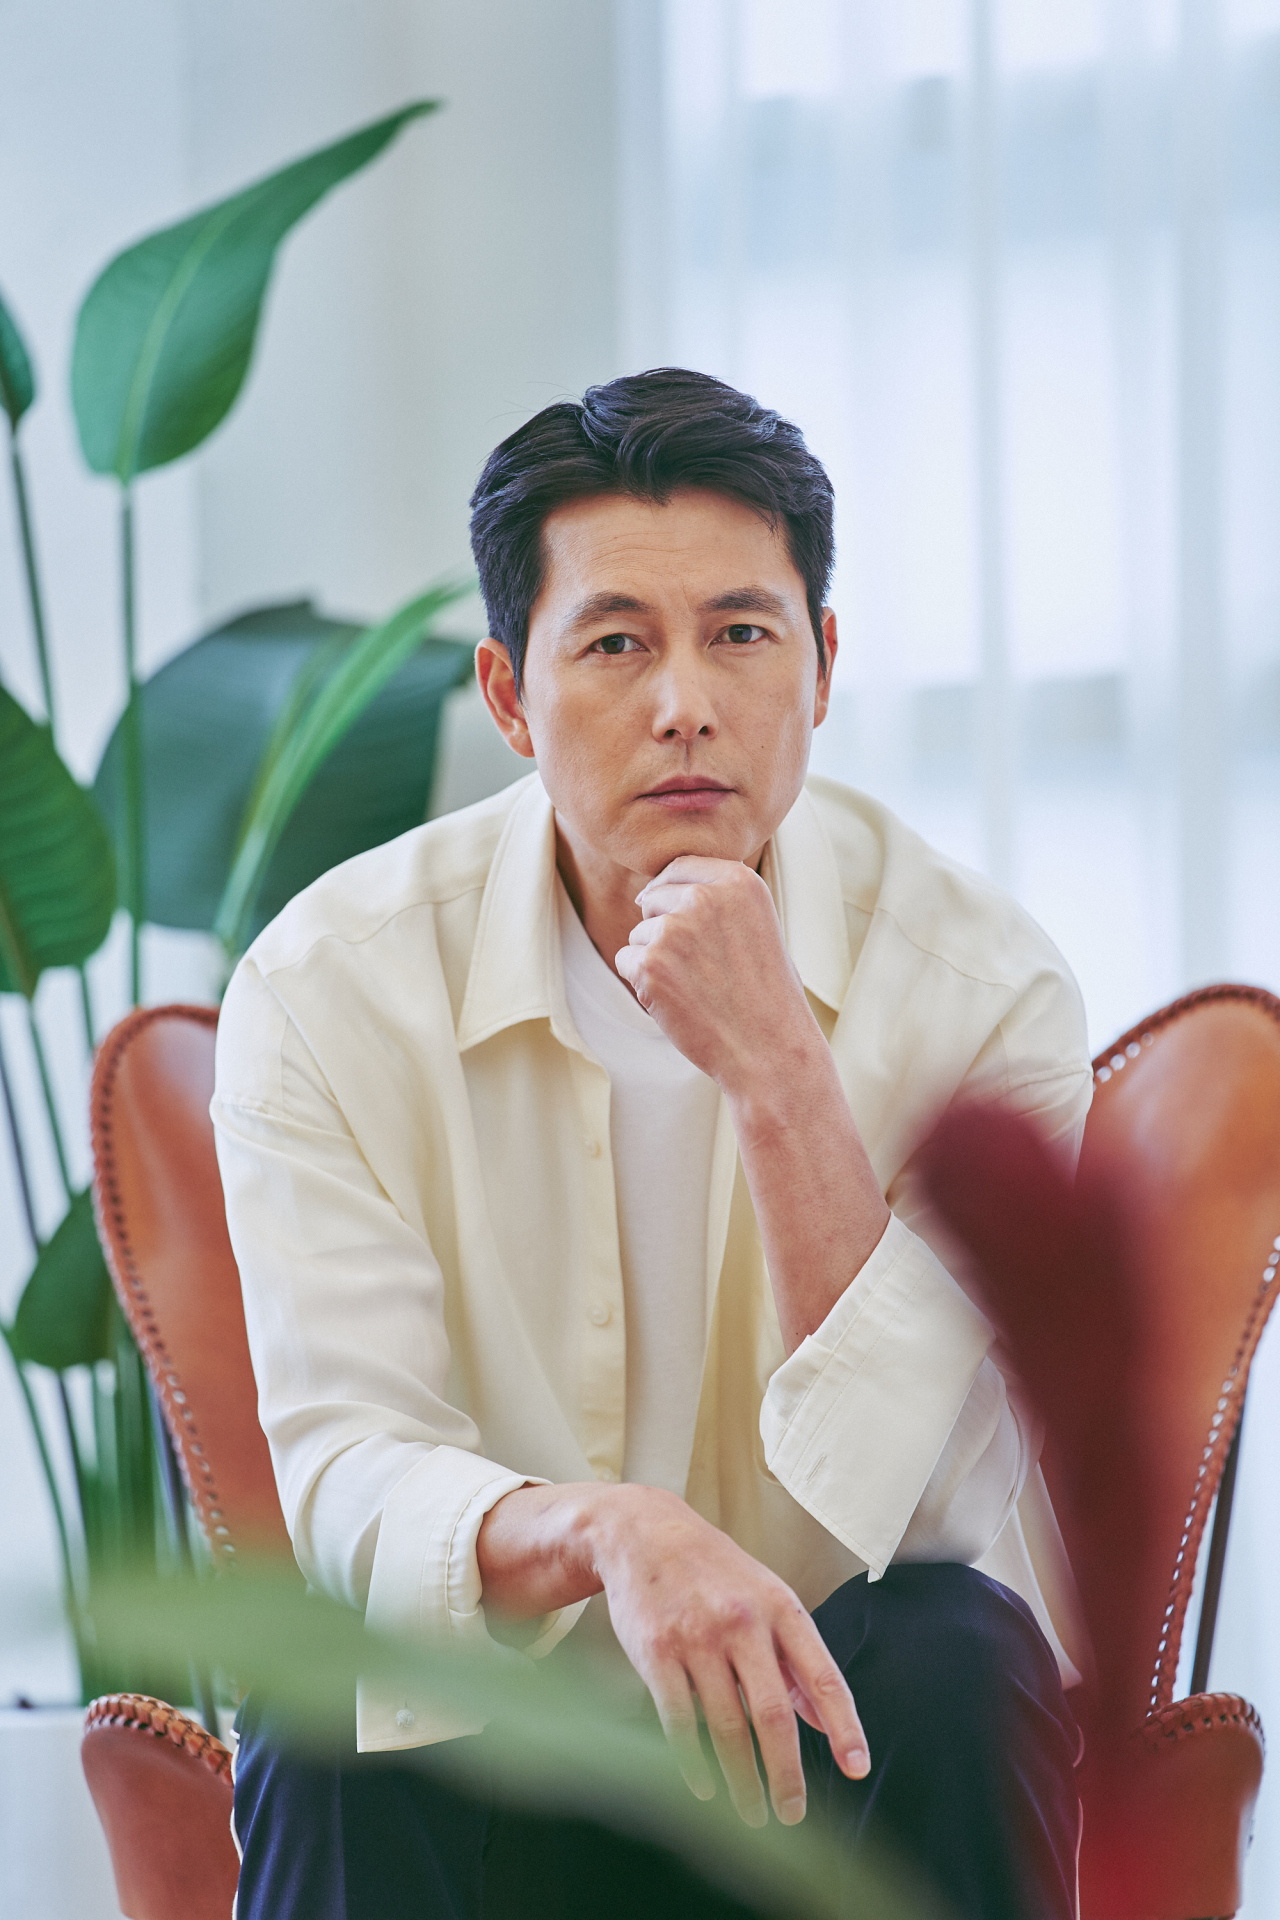 Actor Jung Woo-sung (Lotte Entertainment)